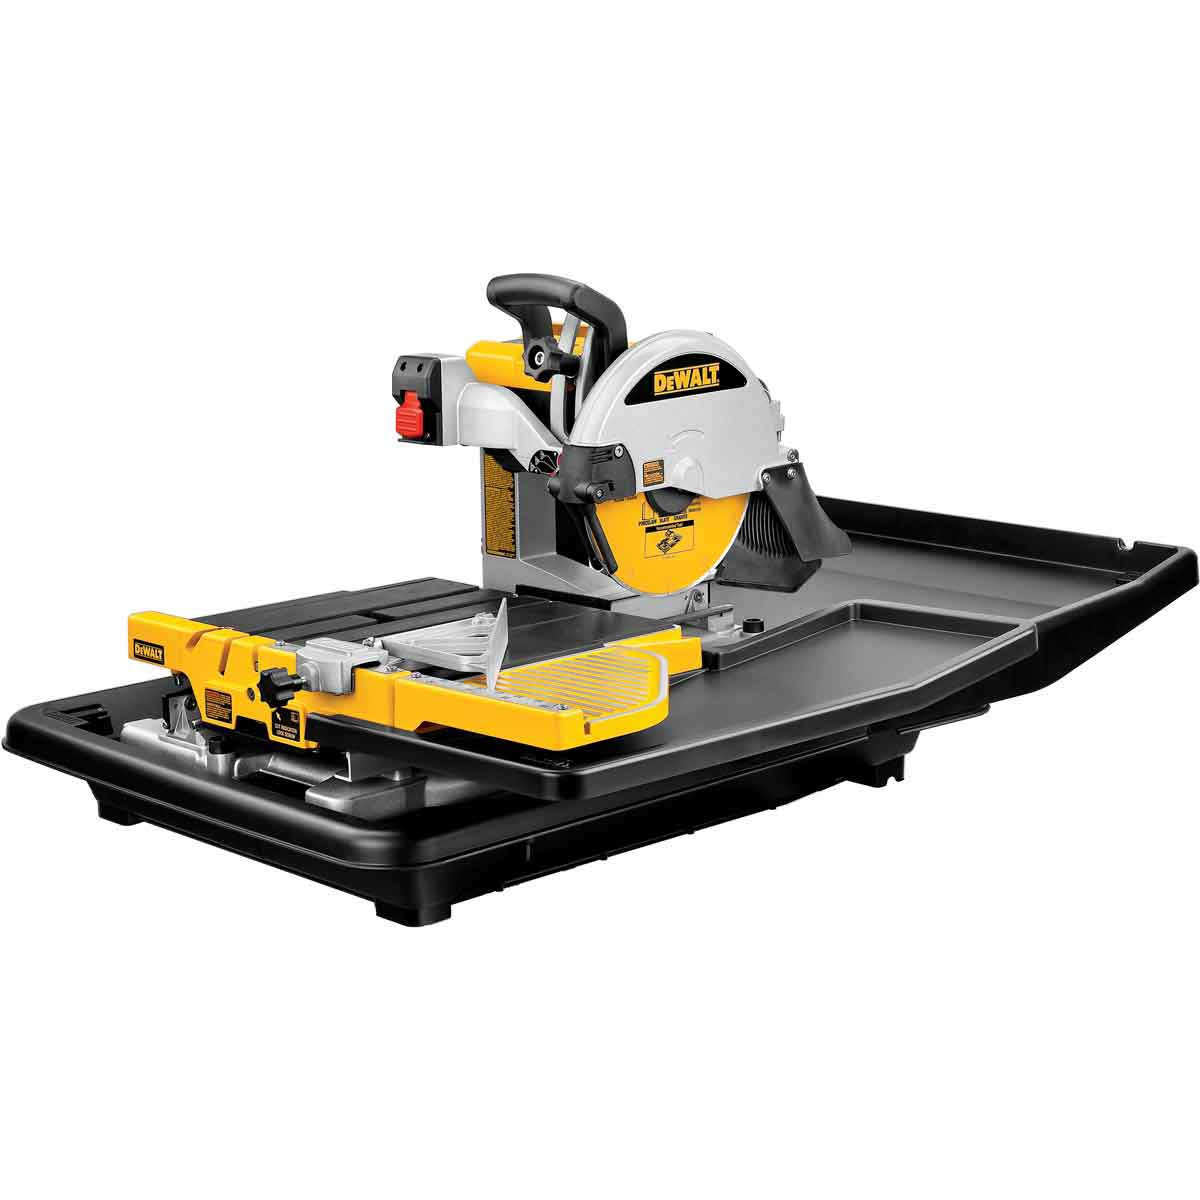 Dewalt D24000 wet tile saw